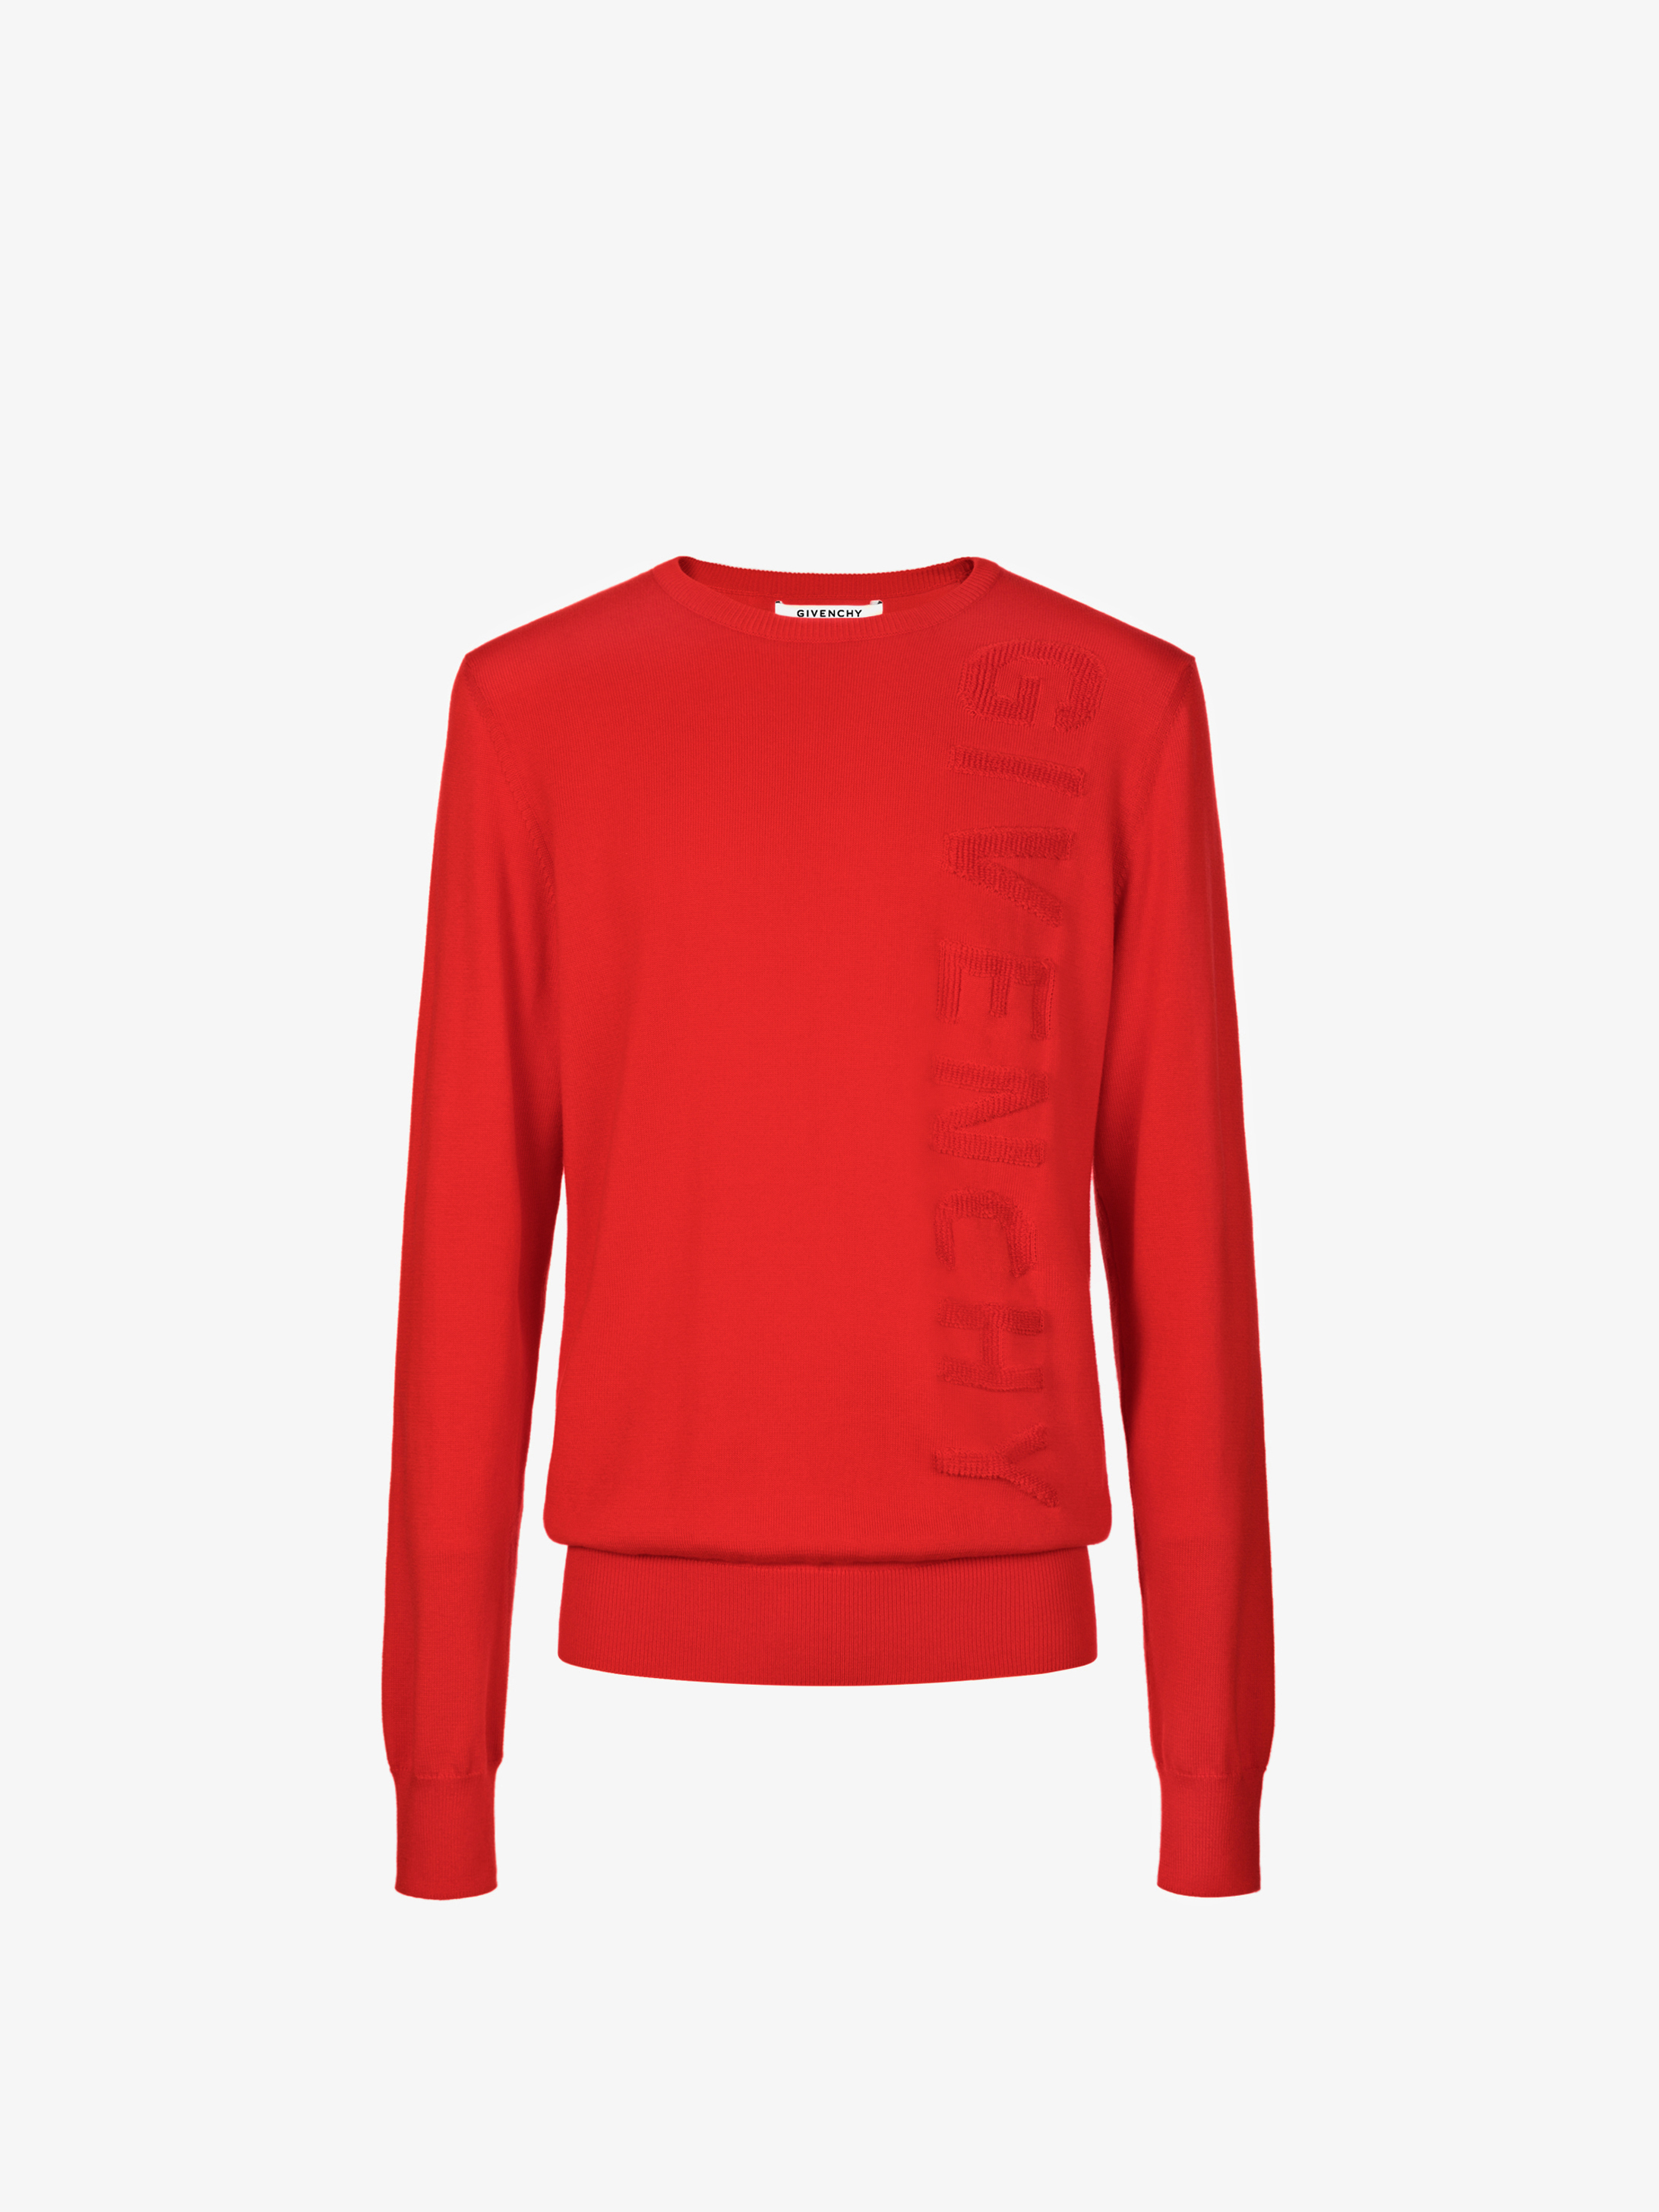 Vertical GIVENCHY signature jumper